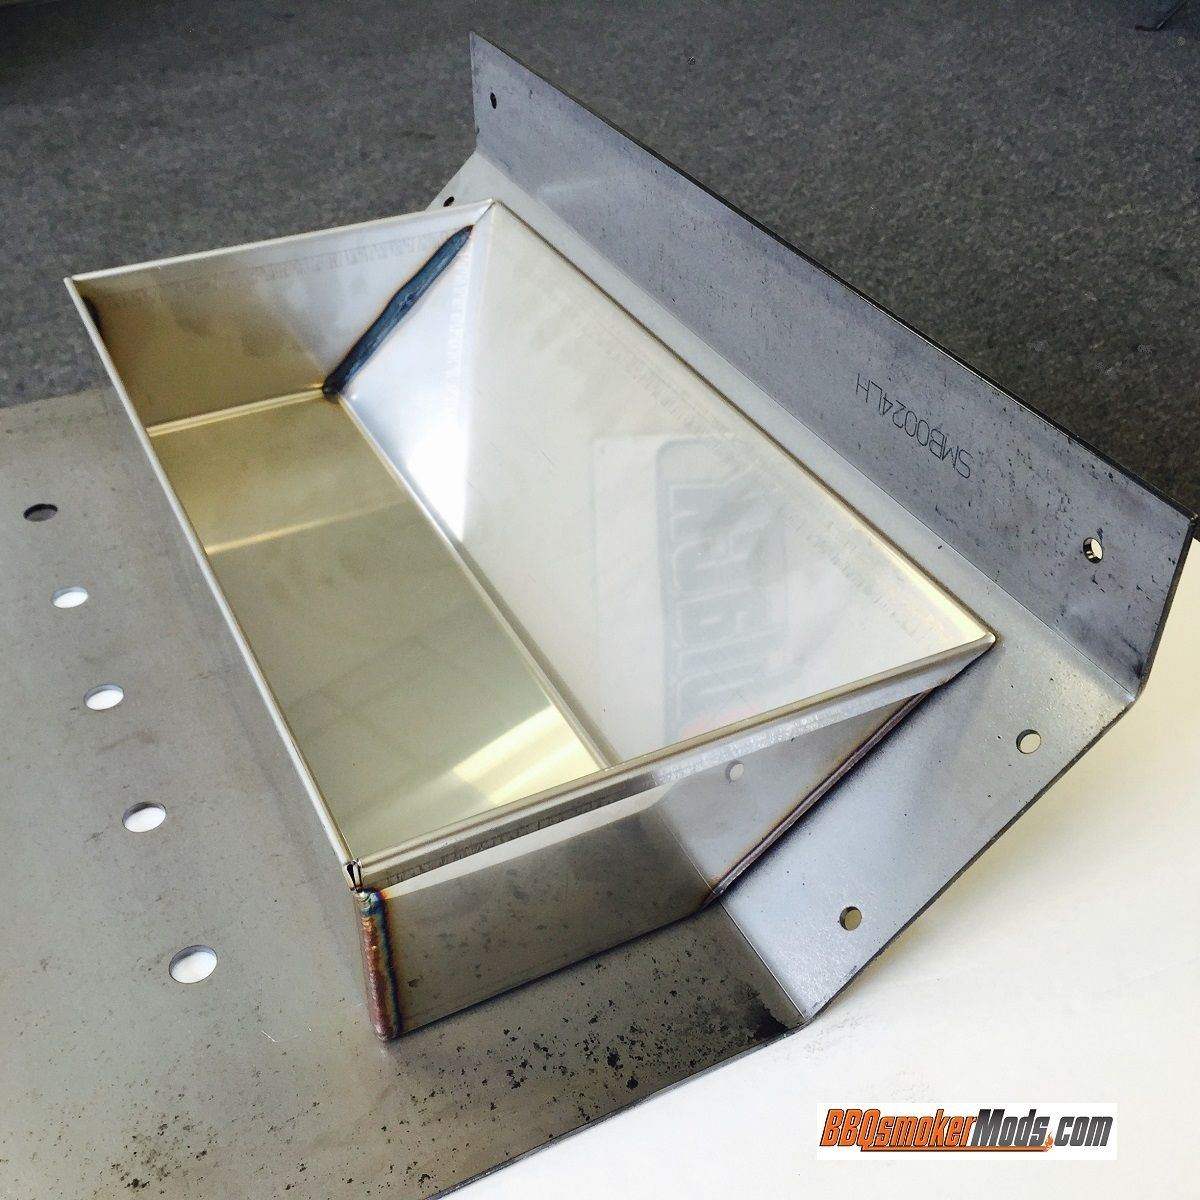 Stainless Steel Water Pan - Fits ALL Baffle Plates by LavaLock® in